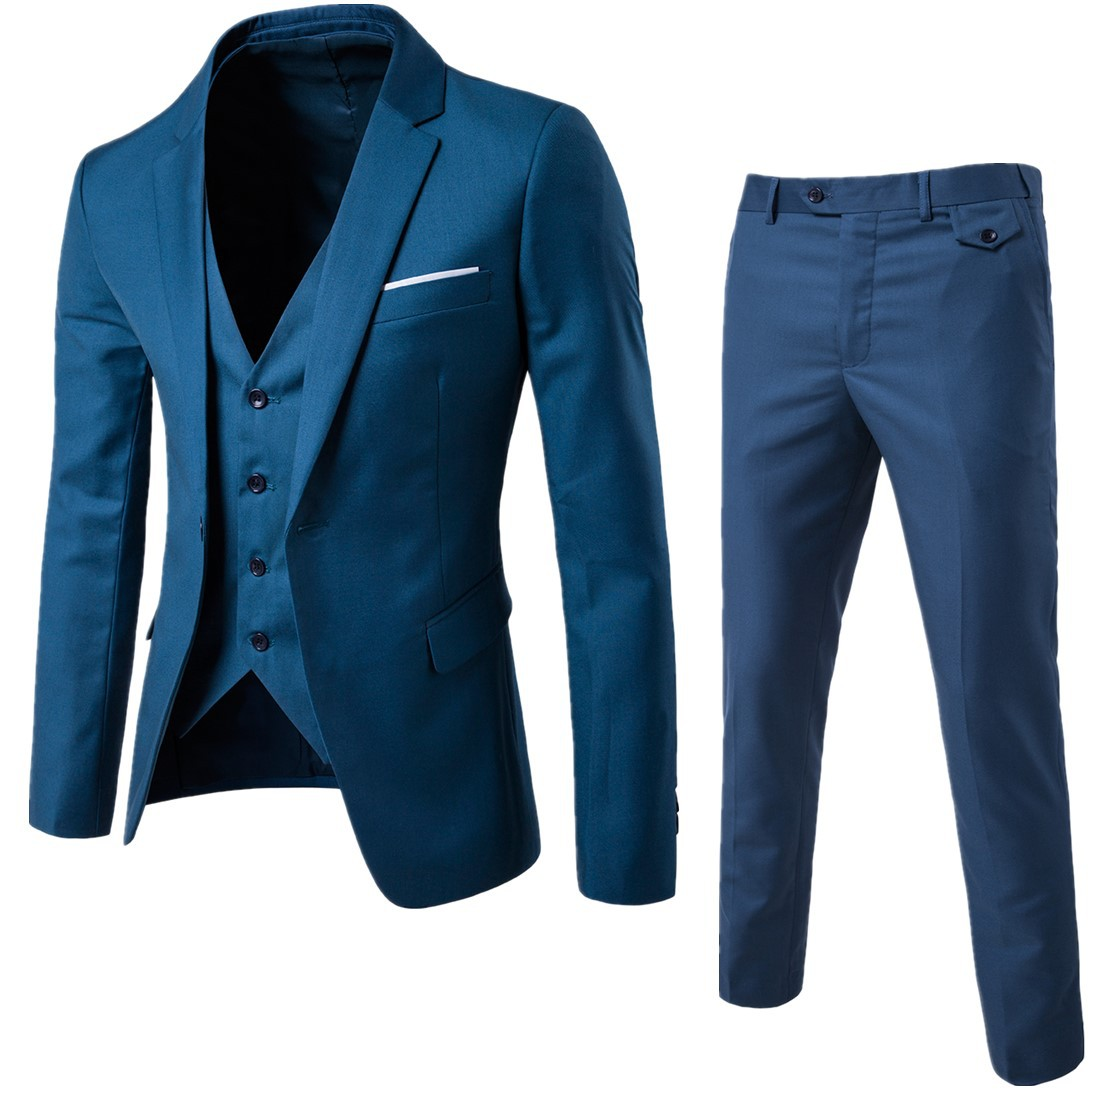 bridegroom-suit-men's-wedding-two-sets--medium